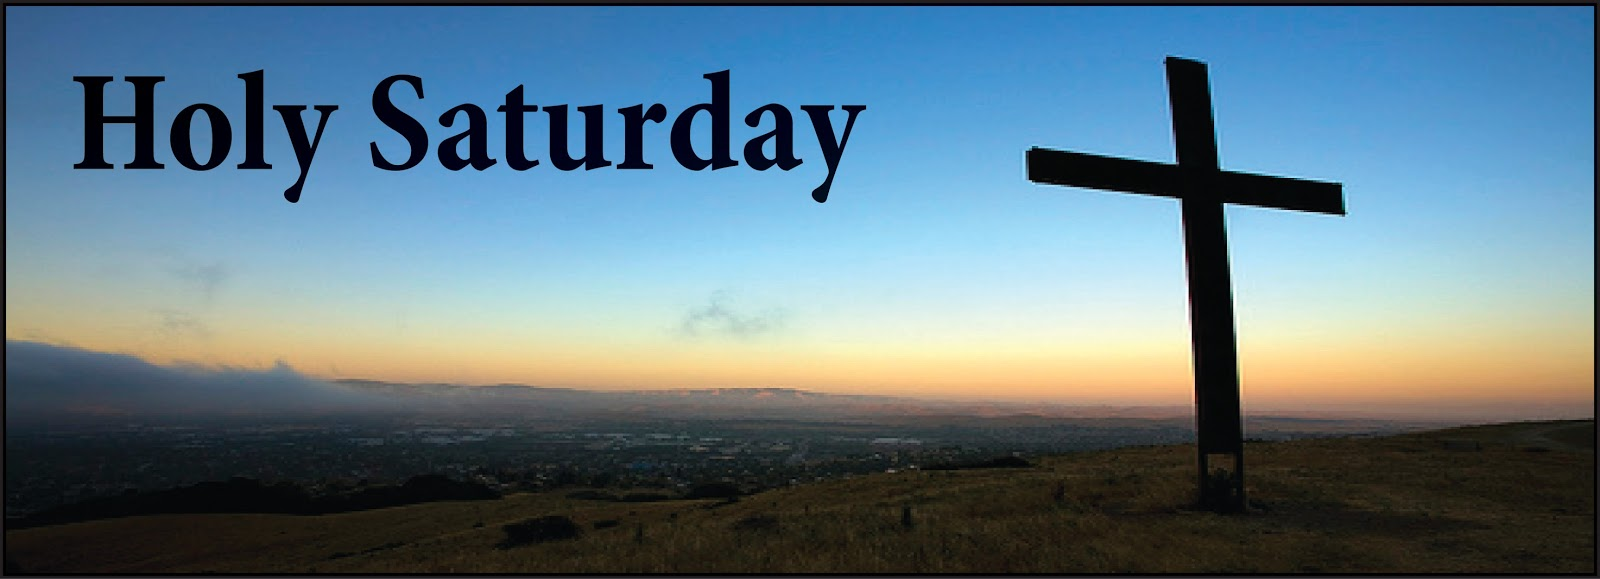 50 Best Happy Holy Saturday 2017 Quotes Wishes Saying And Images